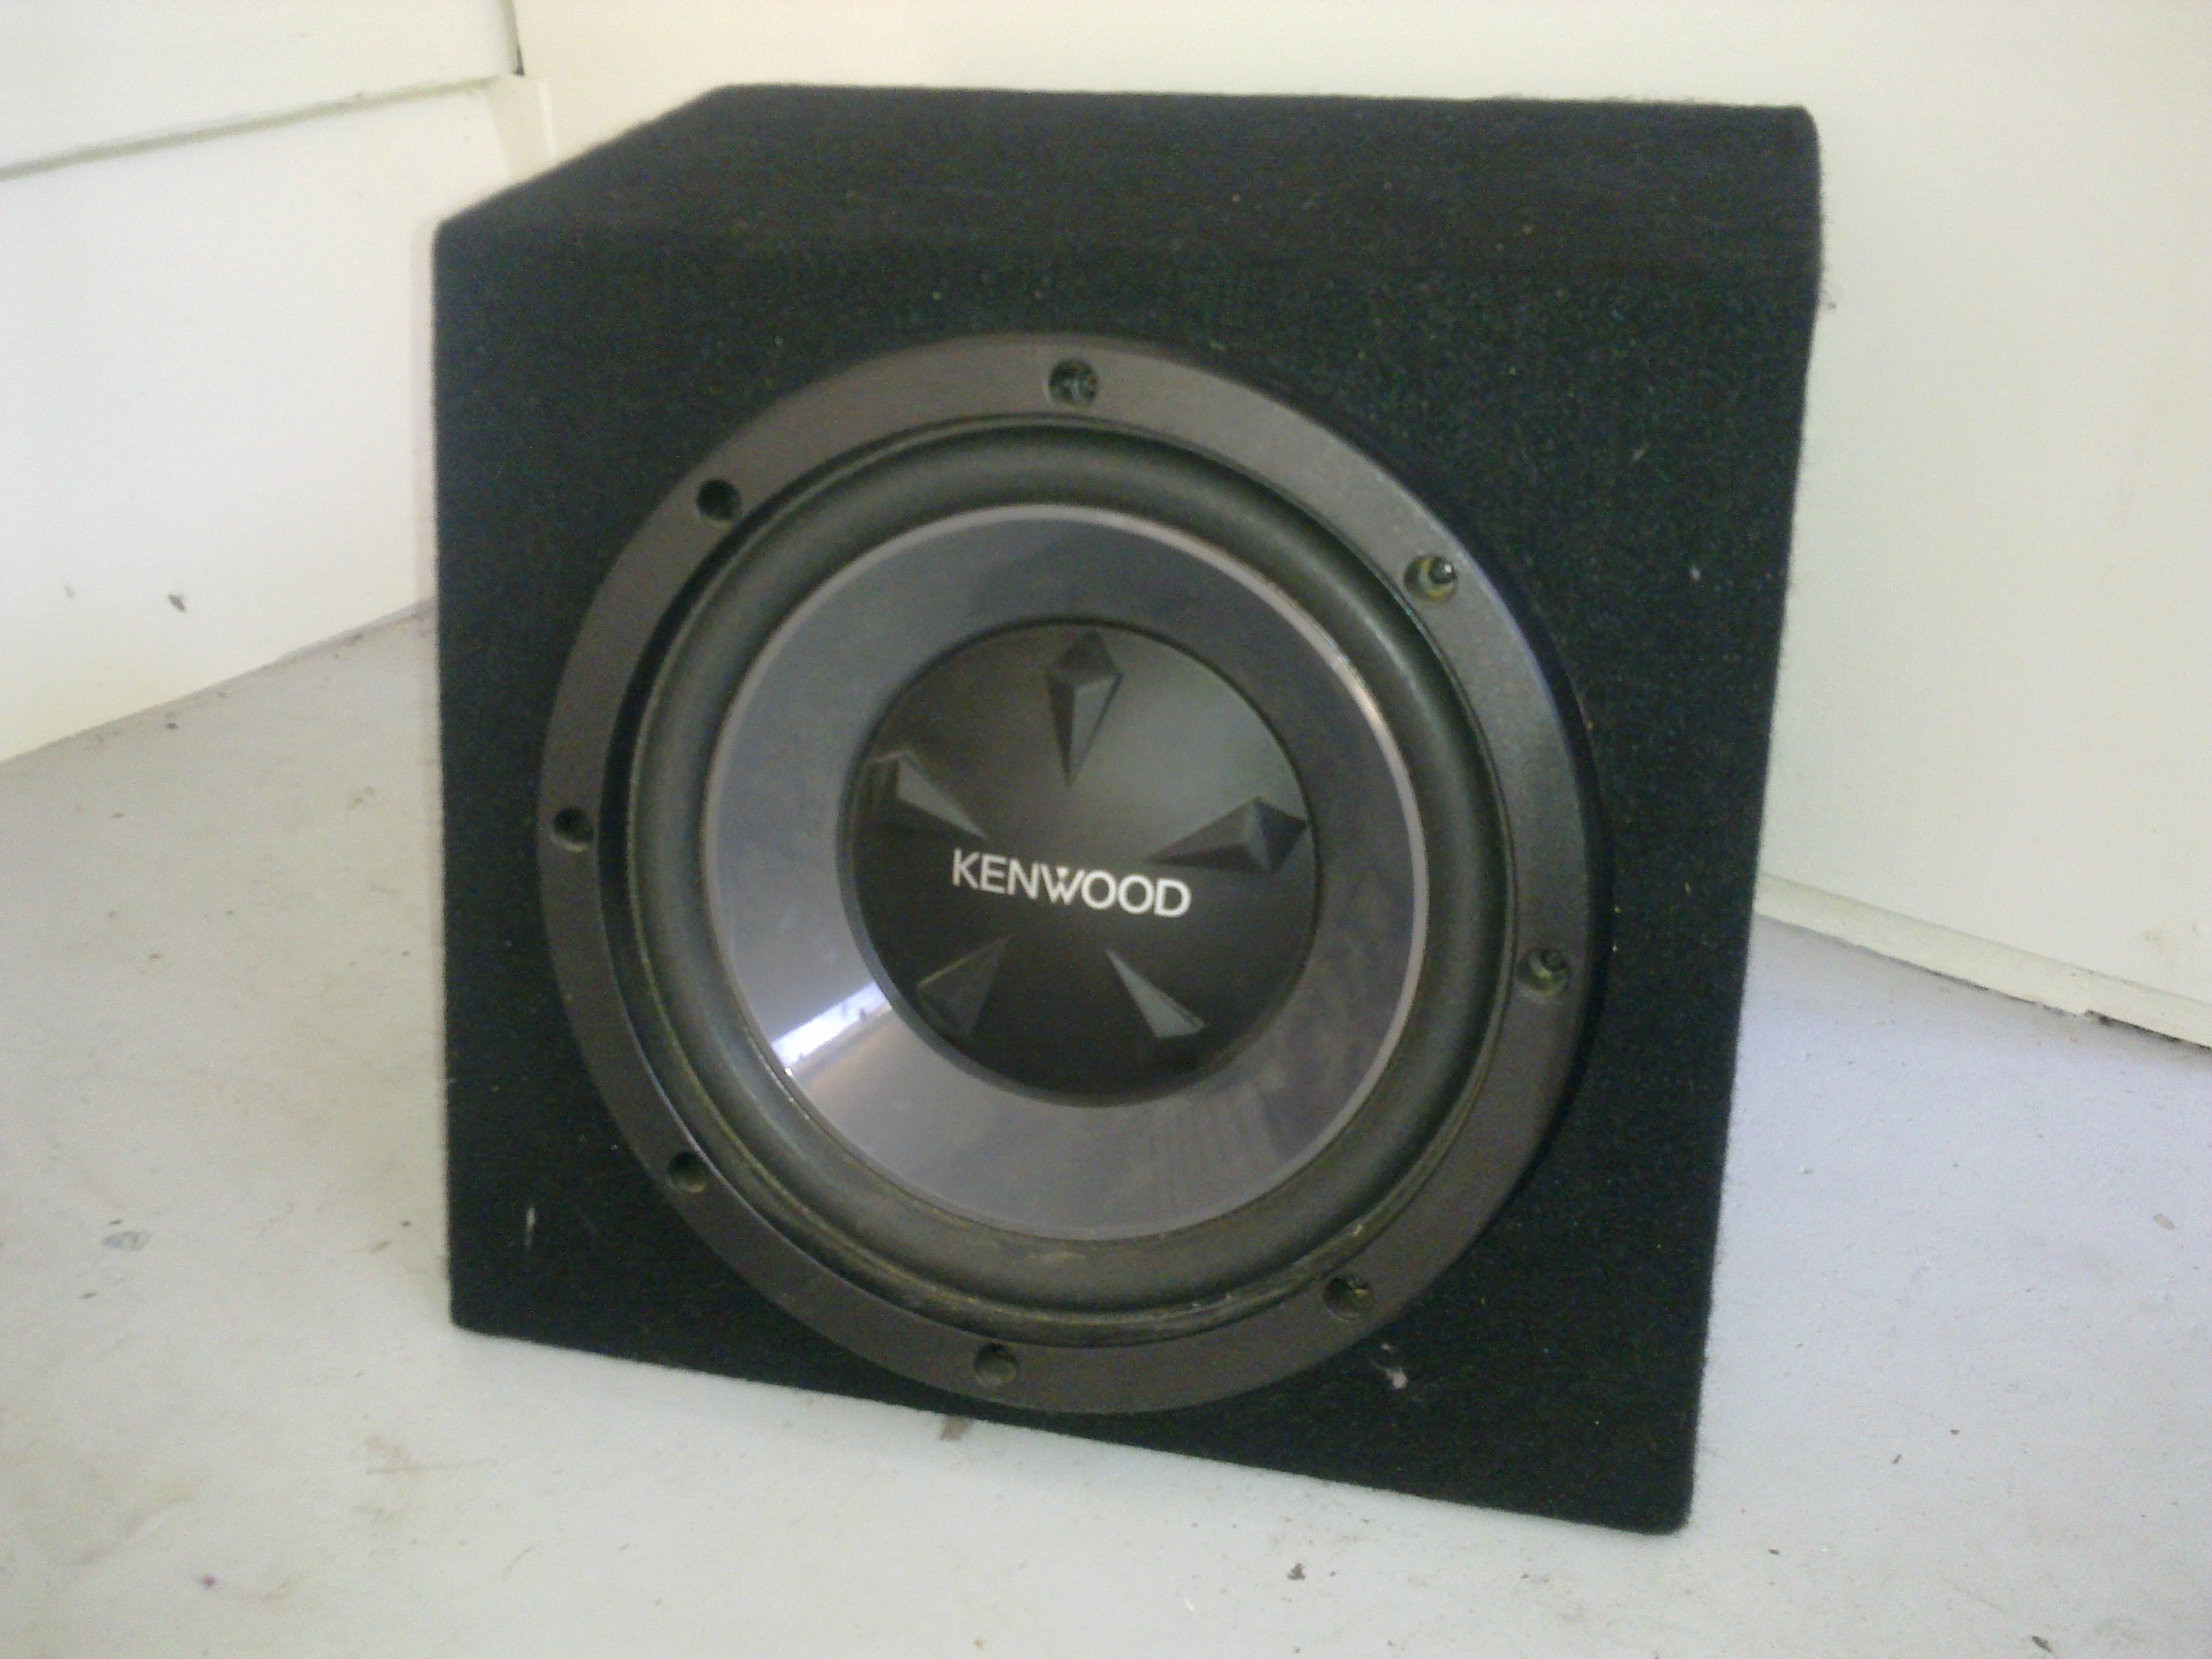 Kenwood inch subwoofer in box